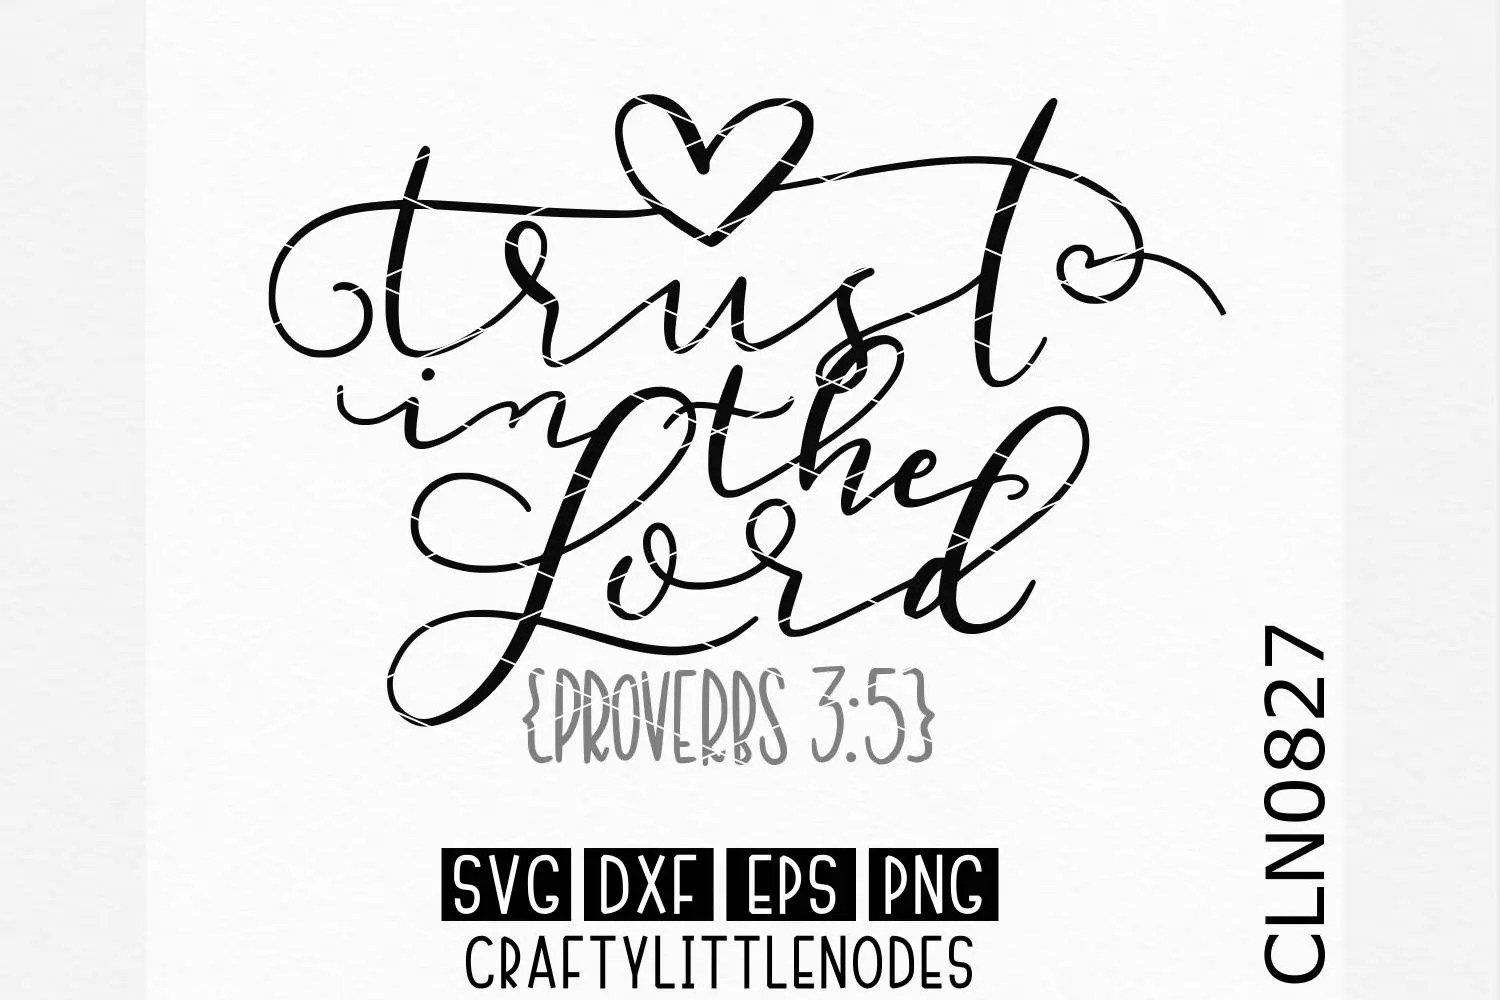 Spiegel Online Shop Logo Png Transparent Svg Vector Freebie Supply Trust In The Lord Svg Proverbs Svg Christian Svg Bible Svg Bible Verse Svg Hand Lettered Svg Hand Drawn Svg Sign Svg Wood Sign Svg